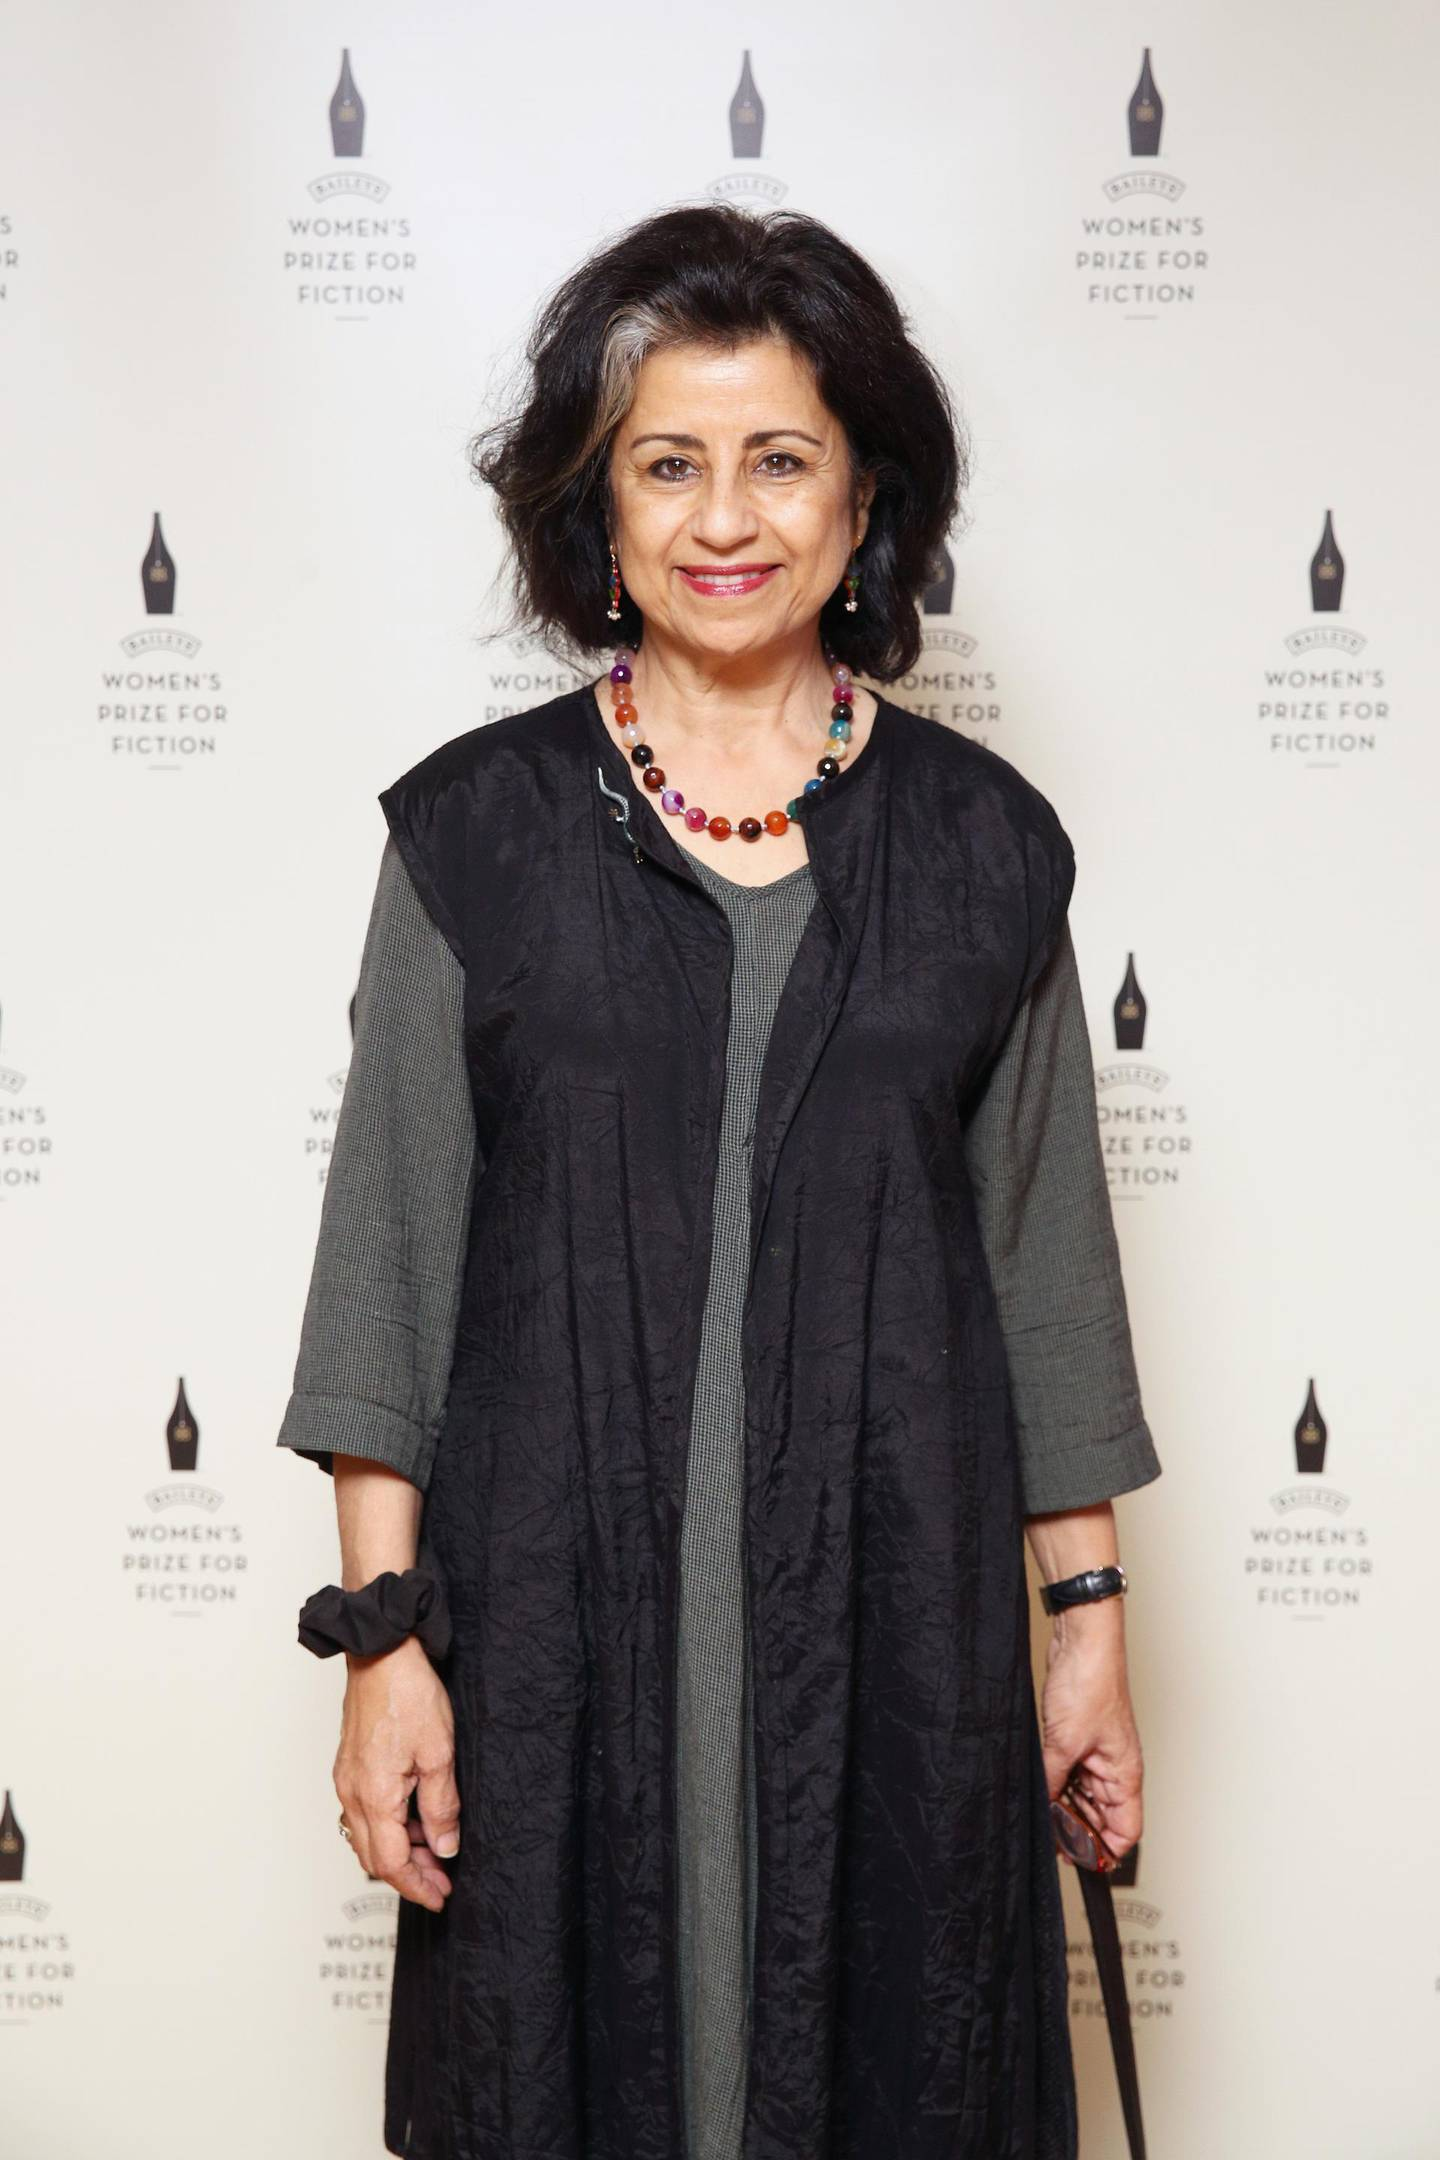 LONDON, ENGLAND - APRIL 11:  Ahdaf Soueif attends the Baileys Women's Prize for Fiction 2016 Shortlist at Royal Festival Hall,  Southbank Centre on April 11, 2016 in London, England.  (Photo by Miles Willis/Getty Images for Baileys)